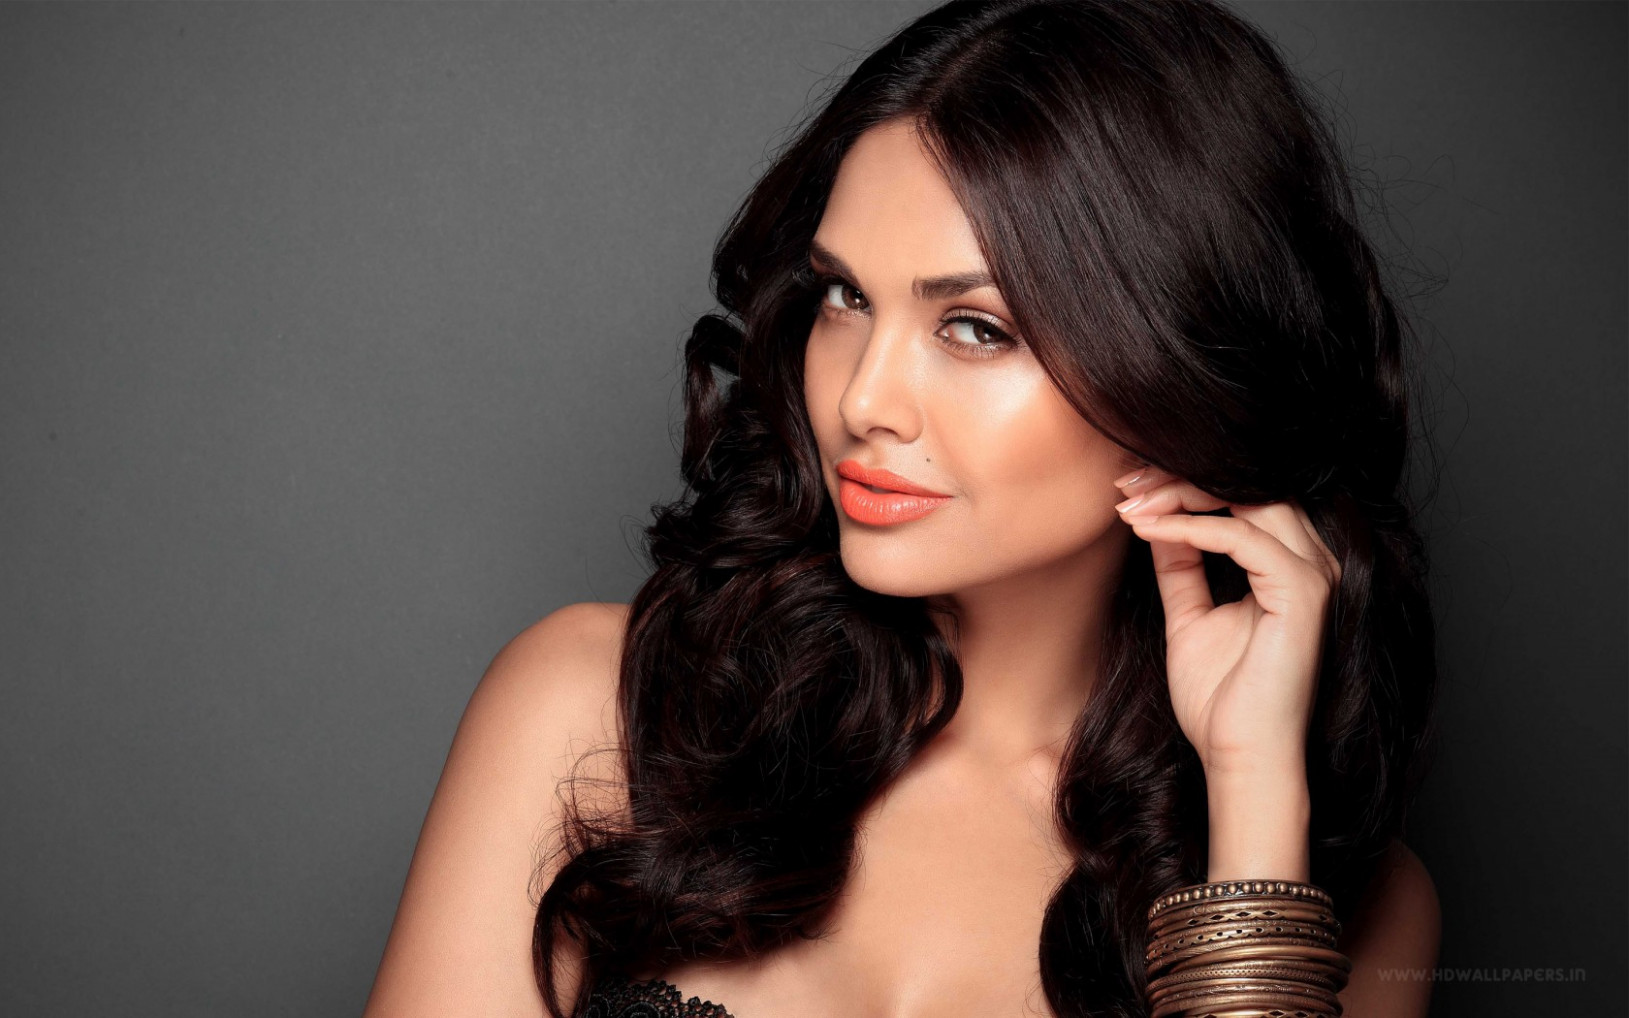 Bollywood Heroine Esha Gupta Wallpapers | HD Wallpapers ...